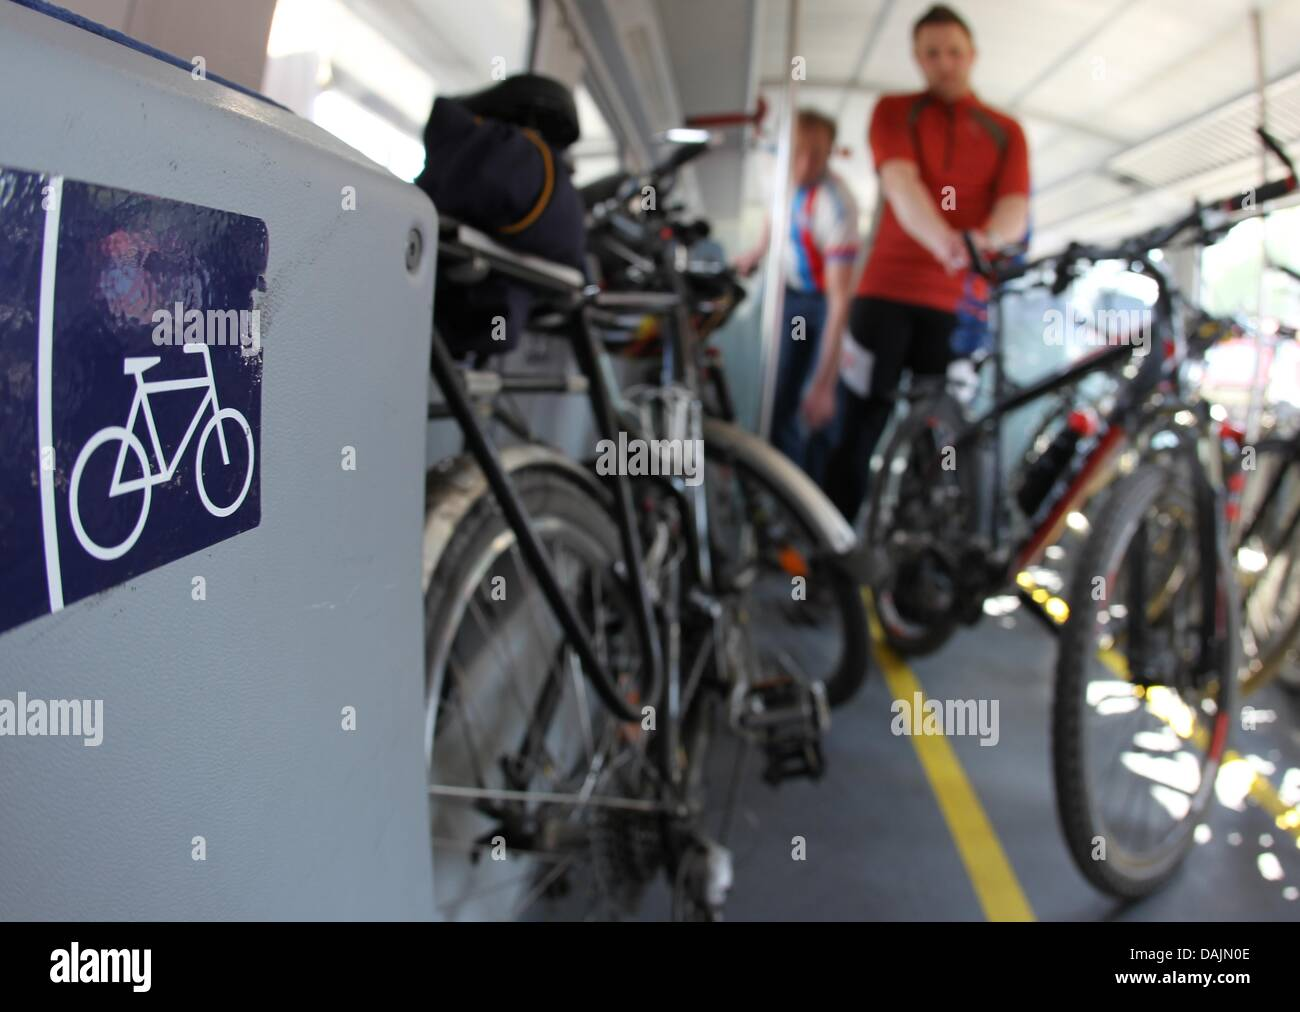 Members of the German Bicycle Club (ADFC) place their bikes in a train at the main station of Nuremberg, Germany, - Stock Image